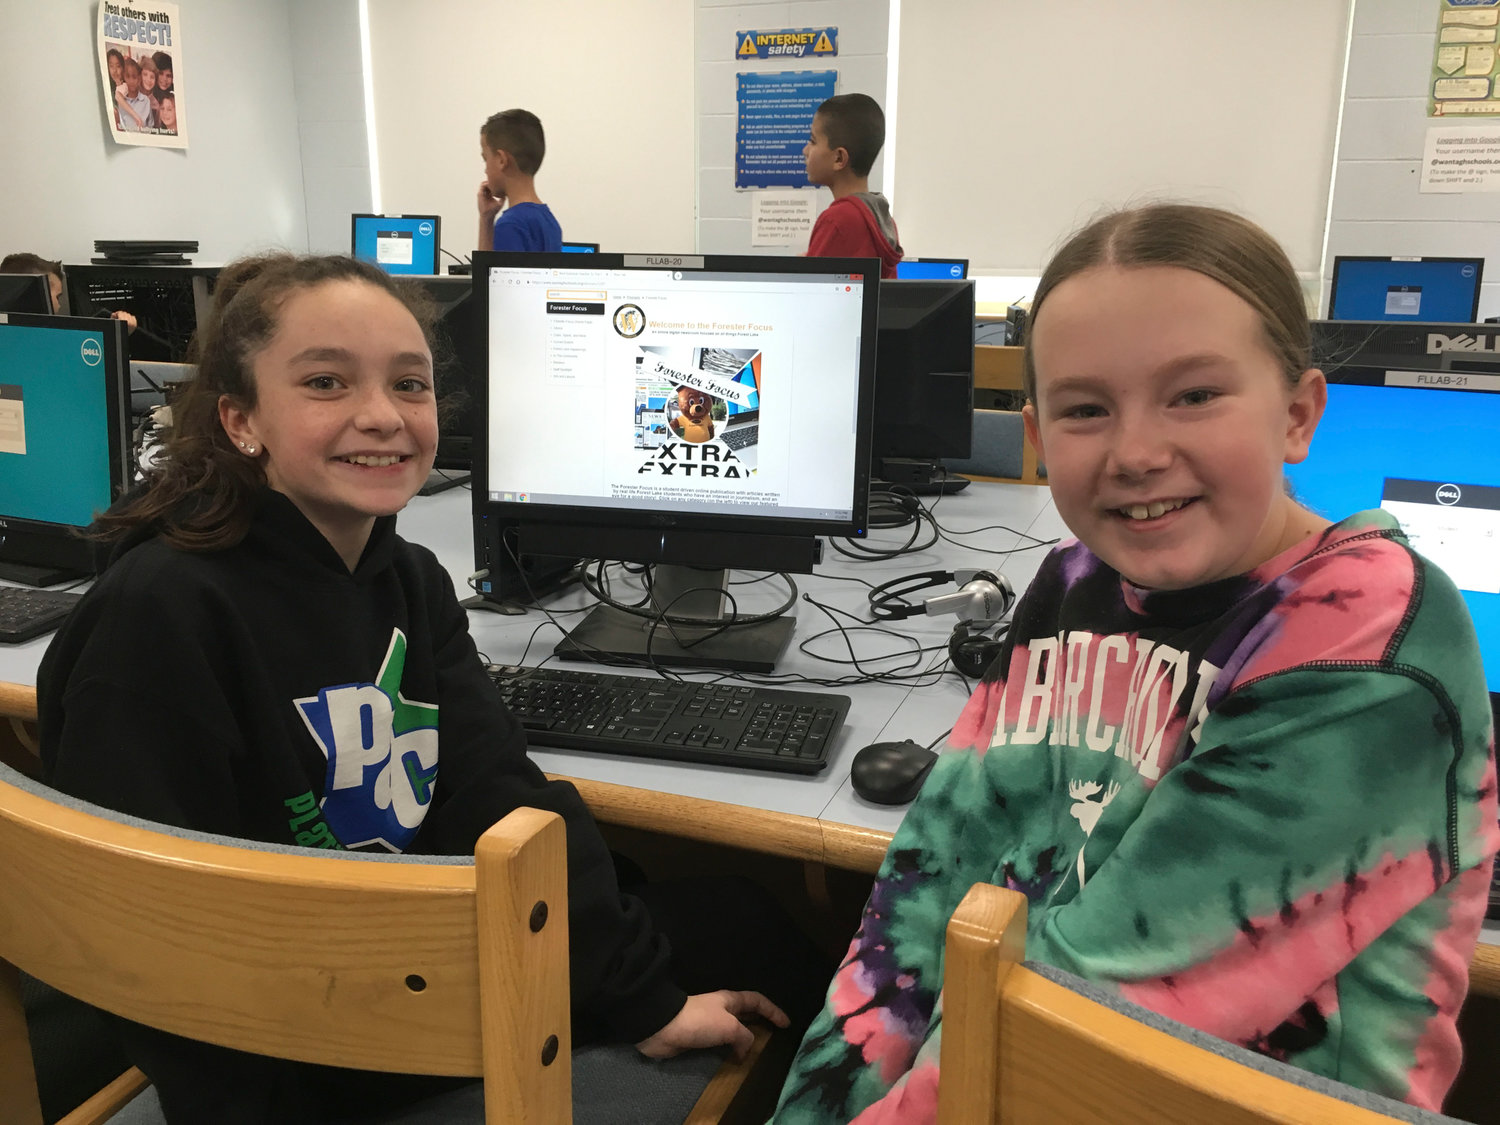 Fifth-graders Amanda Argento, left, and Victoria Ferraro showed off the paper's homepage.